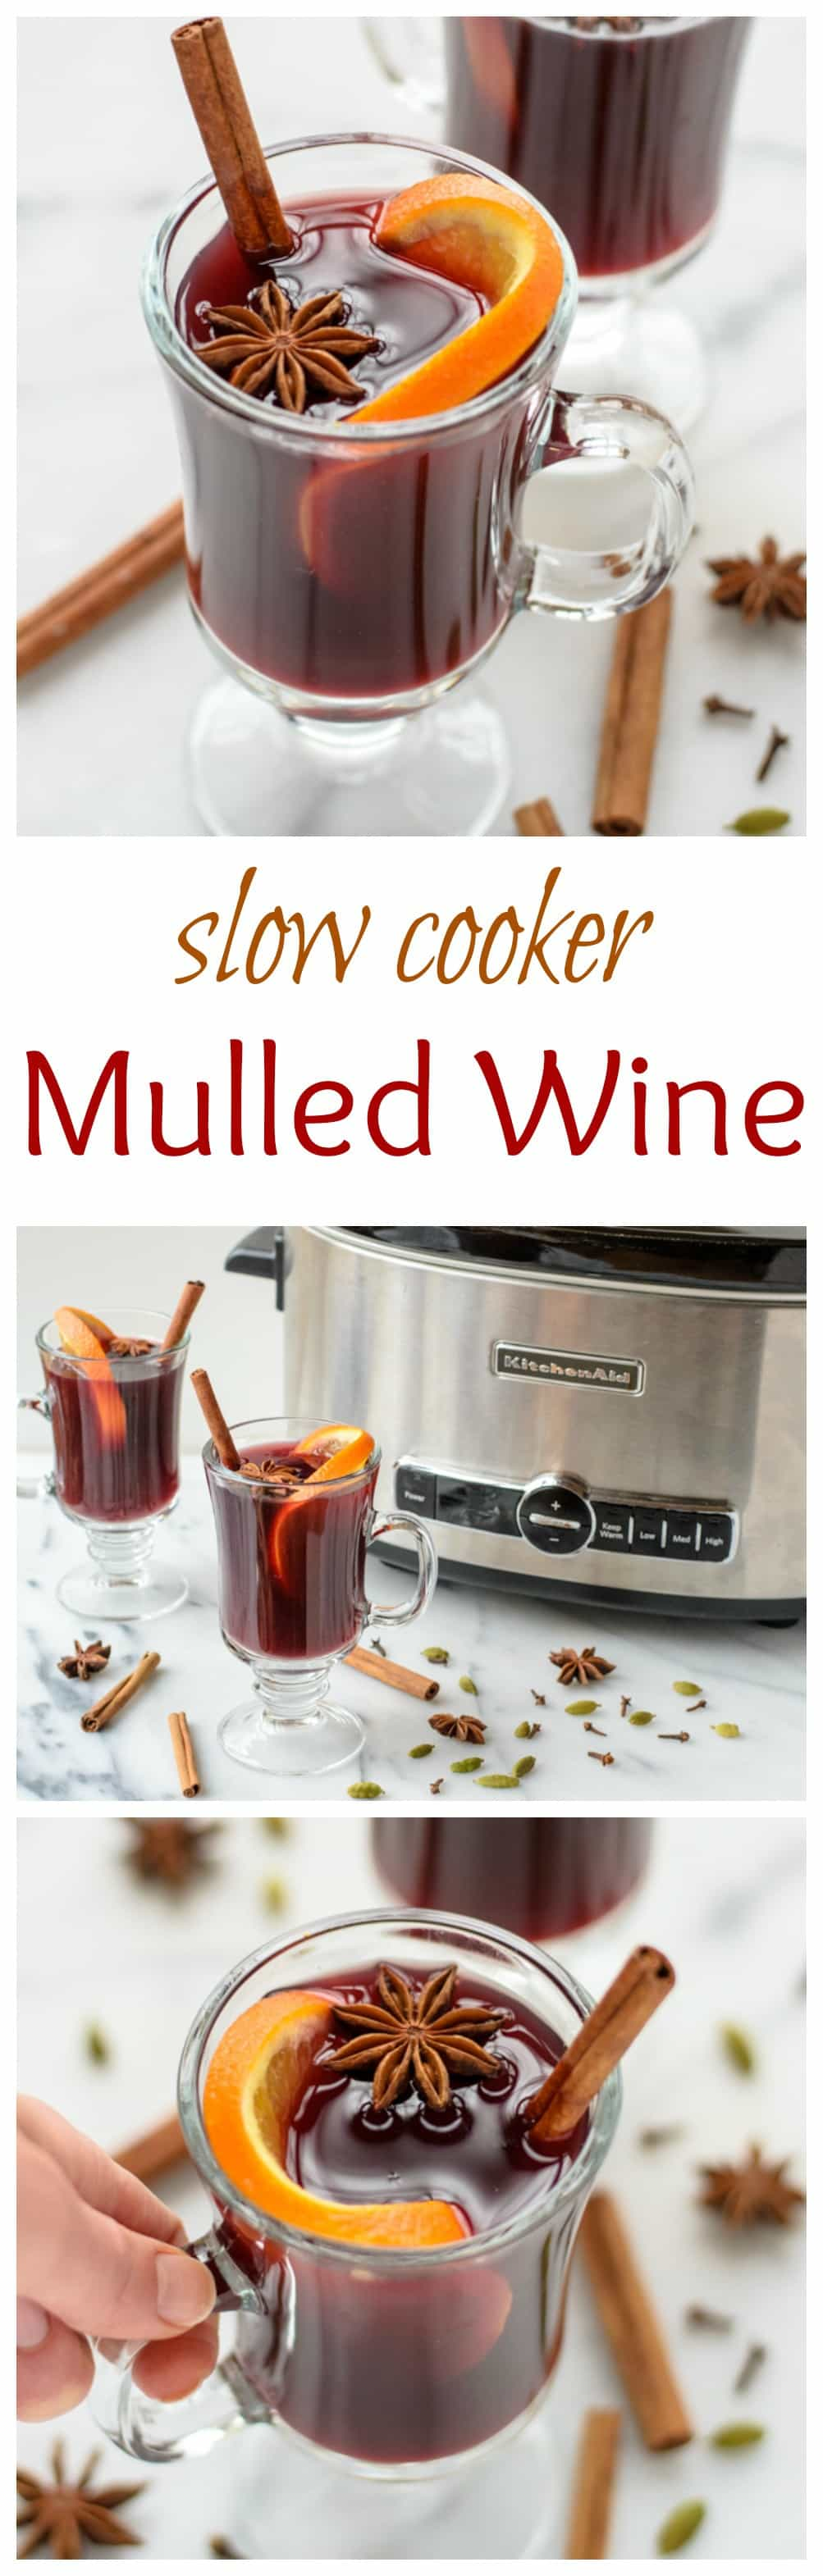 Slow cooker spiced wine (mulled wine) is an easy holiday cocktail recipe, made with red wine, apple cider, citrus, and warm spices. The delicious warm drink is perfect for holiday parties! #cocktails #Christmas #recipe